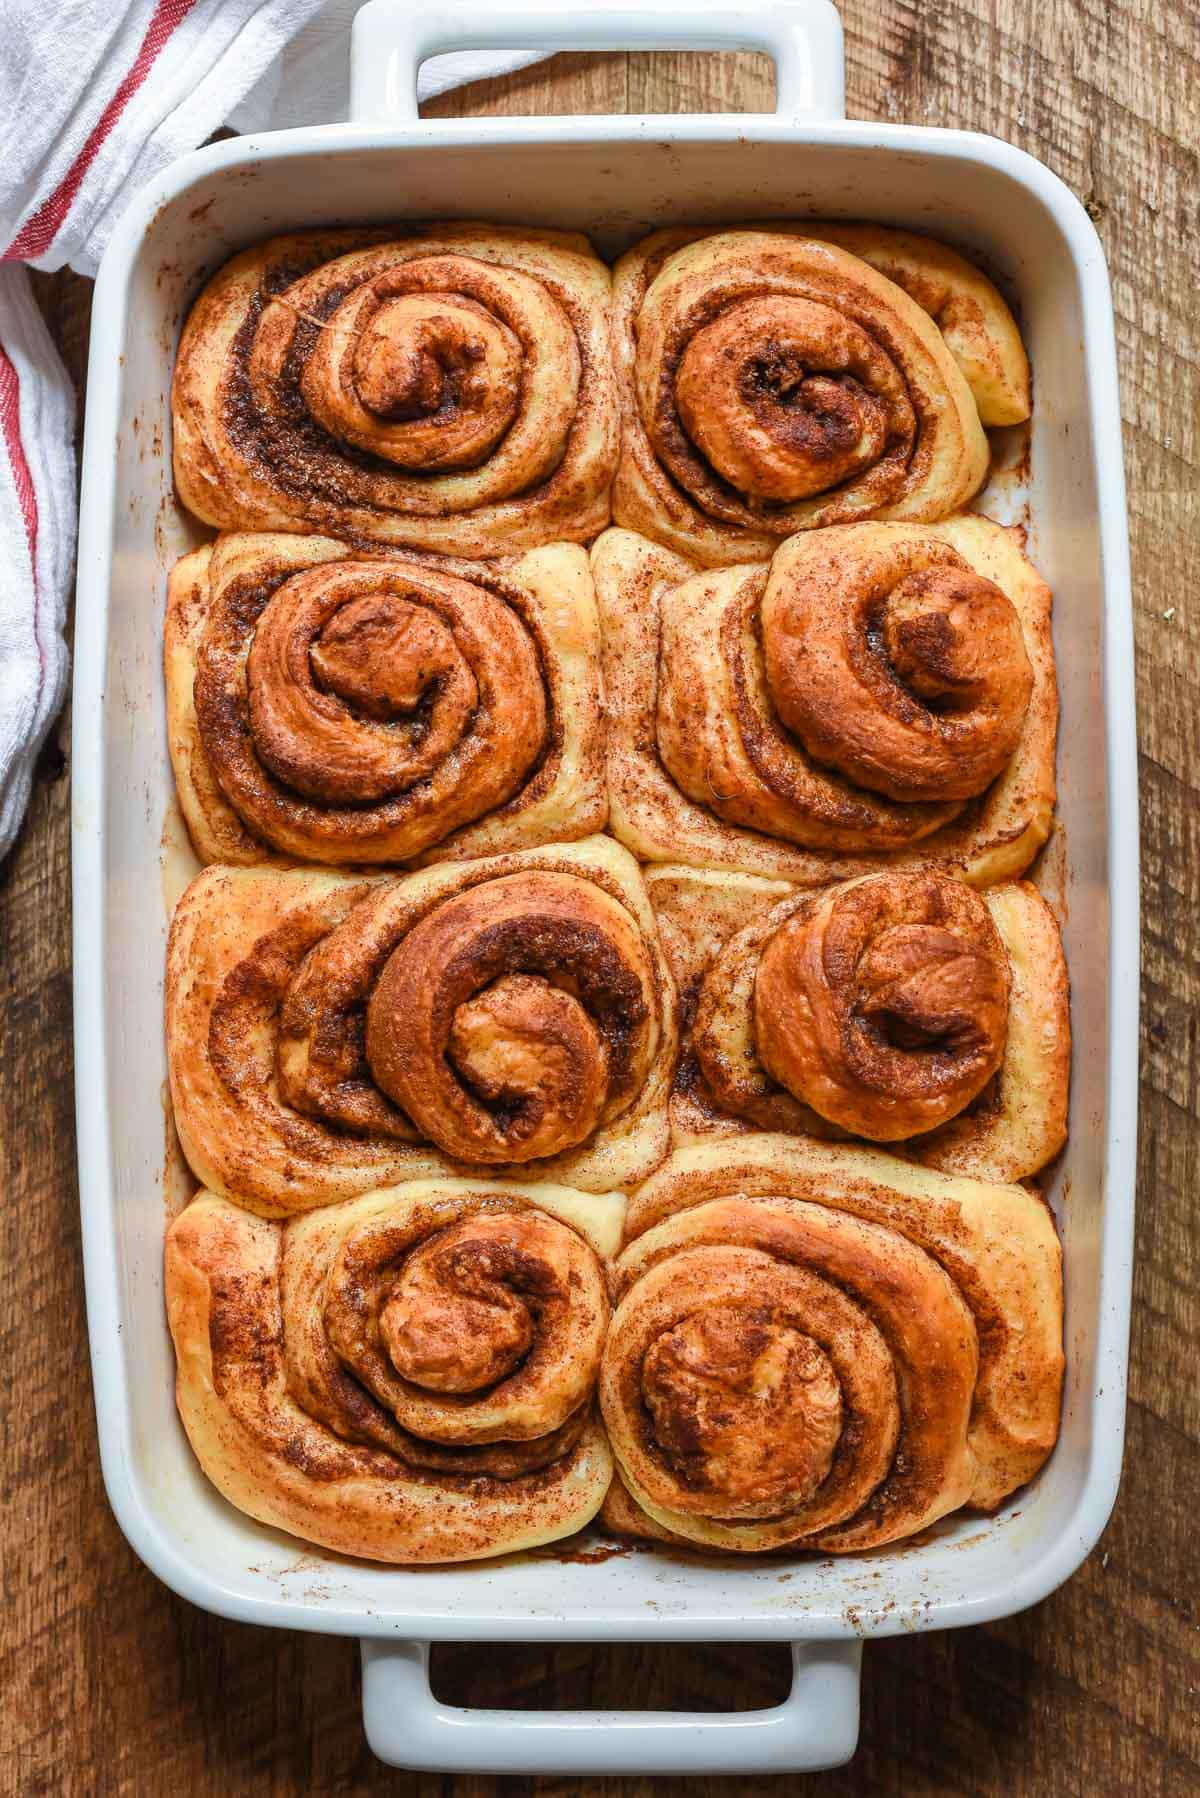 Save yourself from a stressful morning with these Overnight Cinnamon Rolls. They're soft, chewy, and pair perfectly with cream cheese frosting.